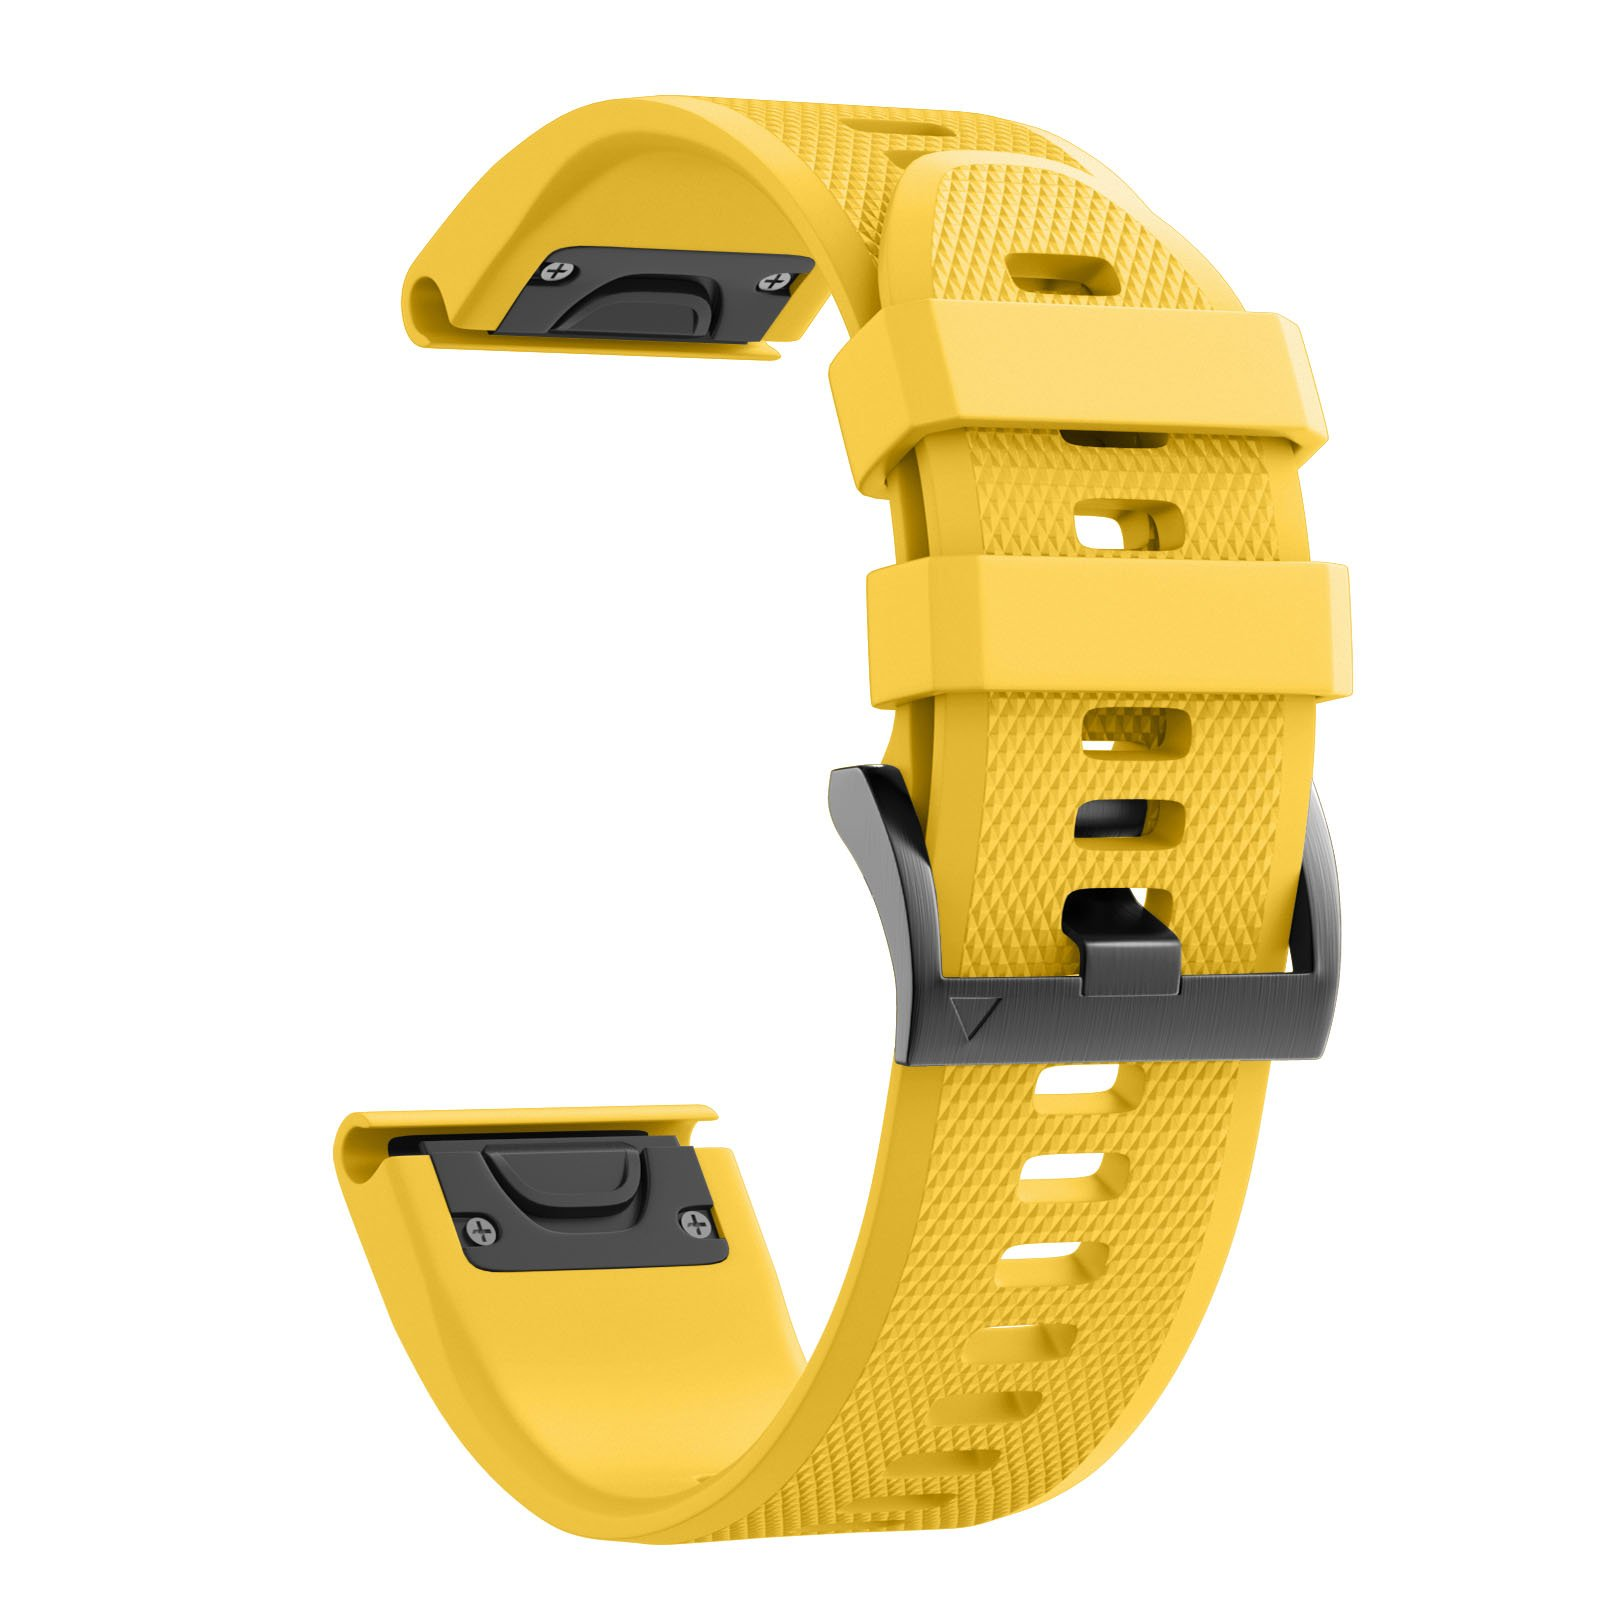 ANCOOL Compatible with Fenix 5 Band Easy Fit 22mm Width Soft Silicone Watch Strap Replacement for Fenix 5/Fenix 5 Plus/Forerunner 935/Approach S60/Quatix 5 - Yellow by ANCOOL